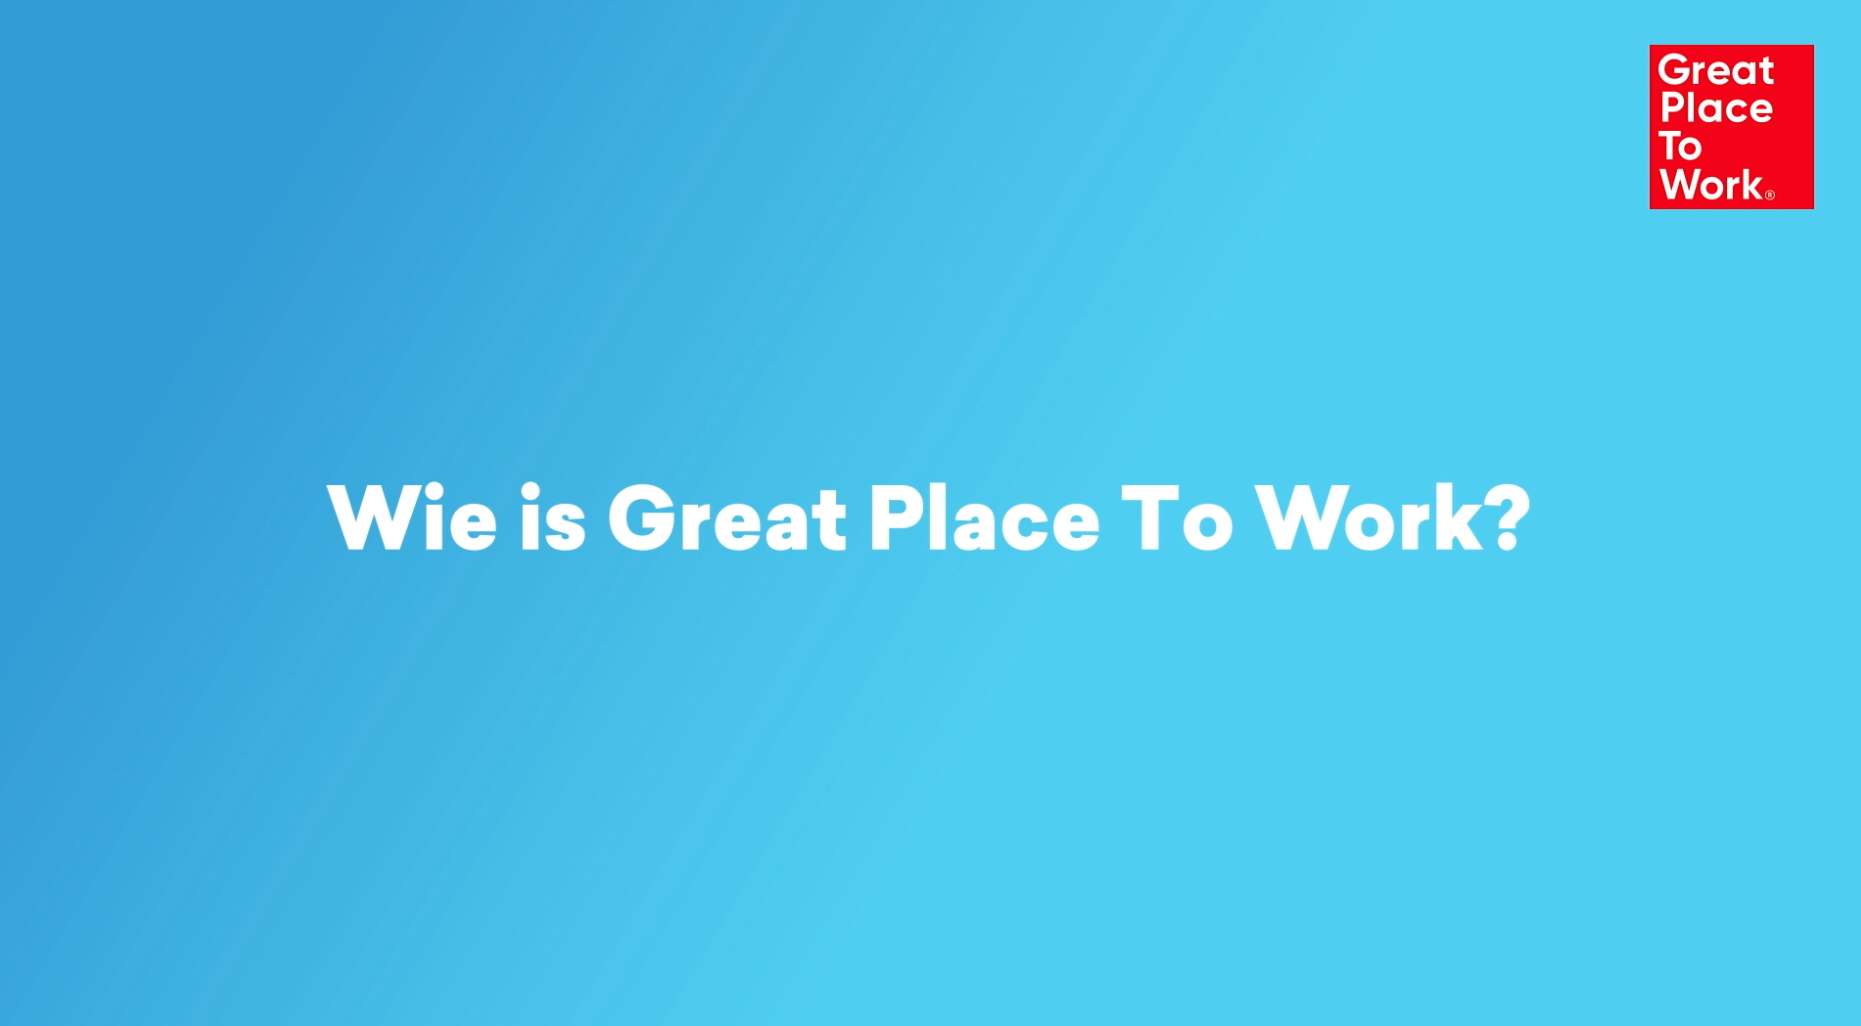 Wie is Great Place To Work?